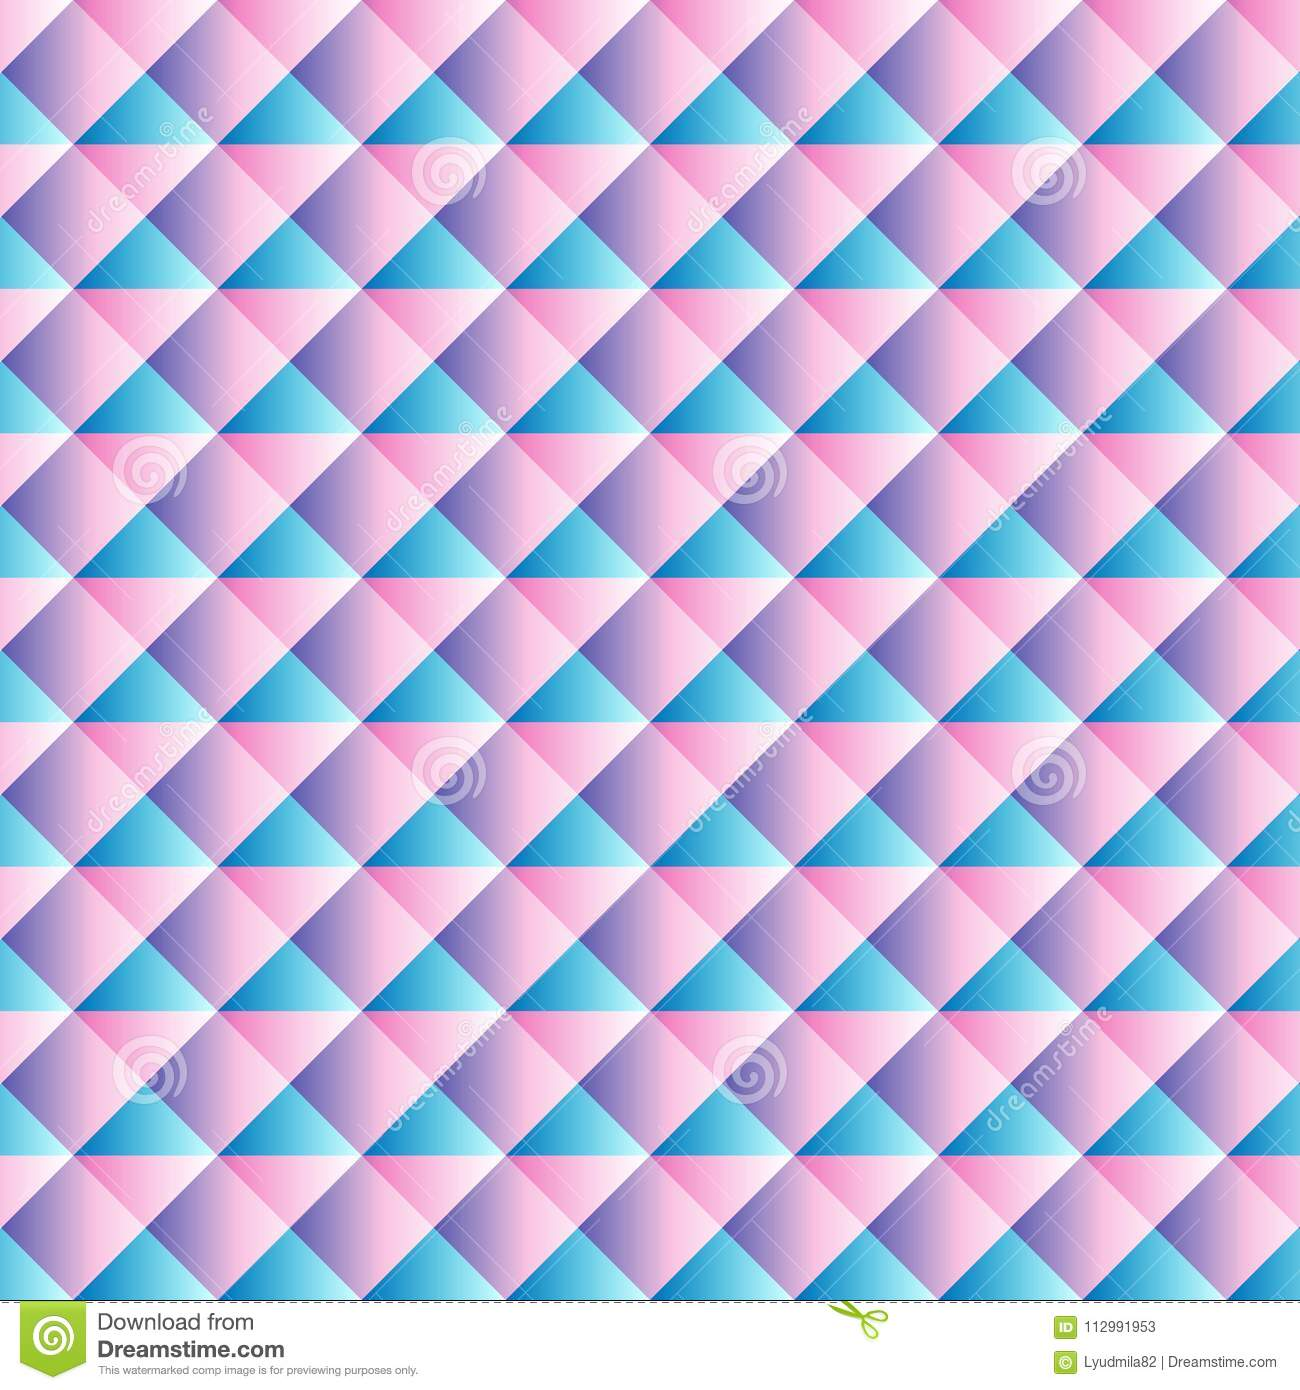 Blue pink geometric background for website decoration, banner, leaflet, top cover, packing.